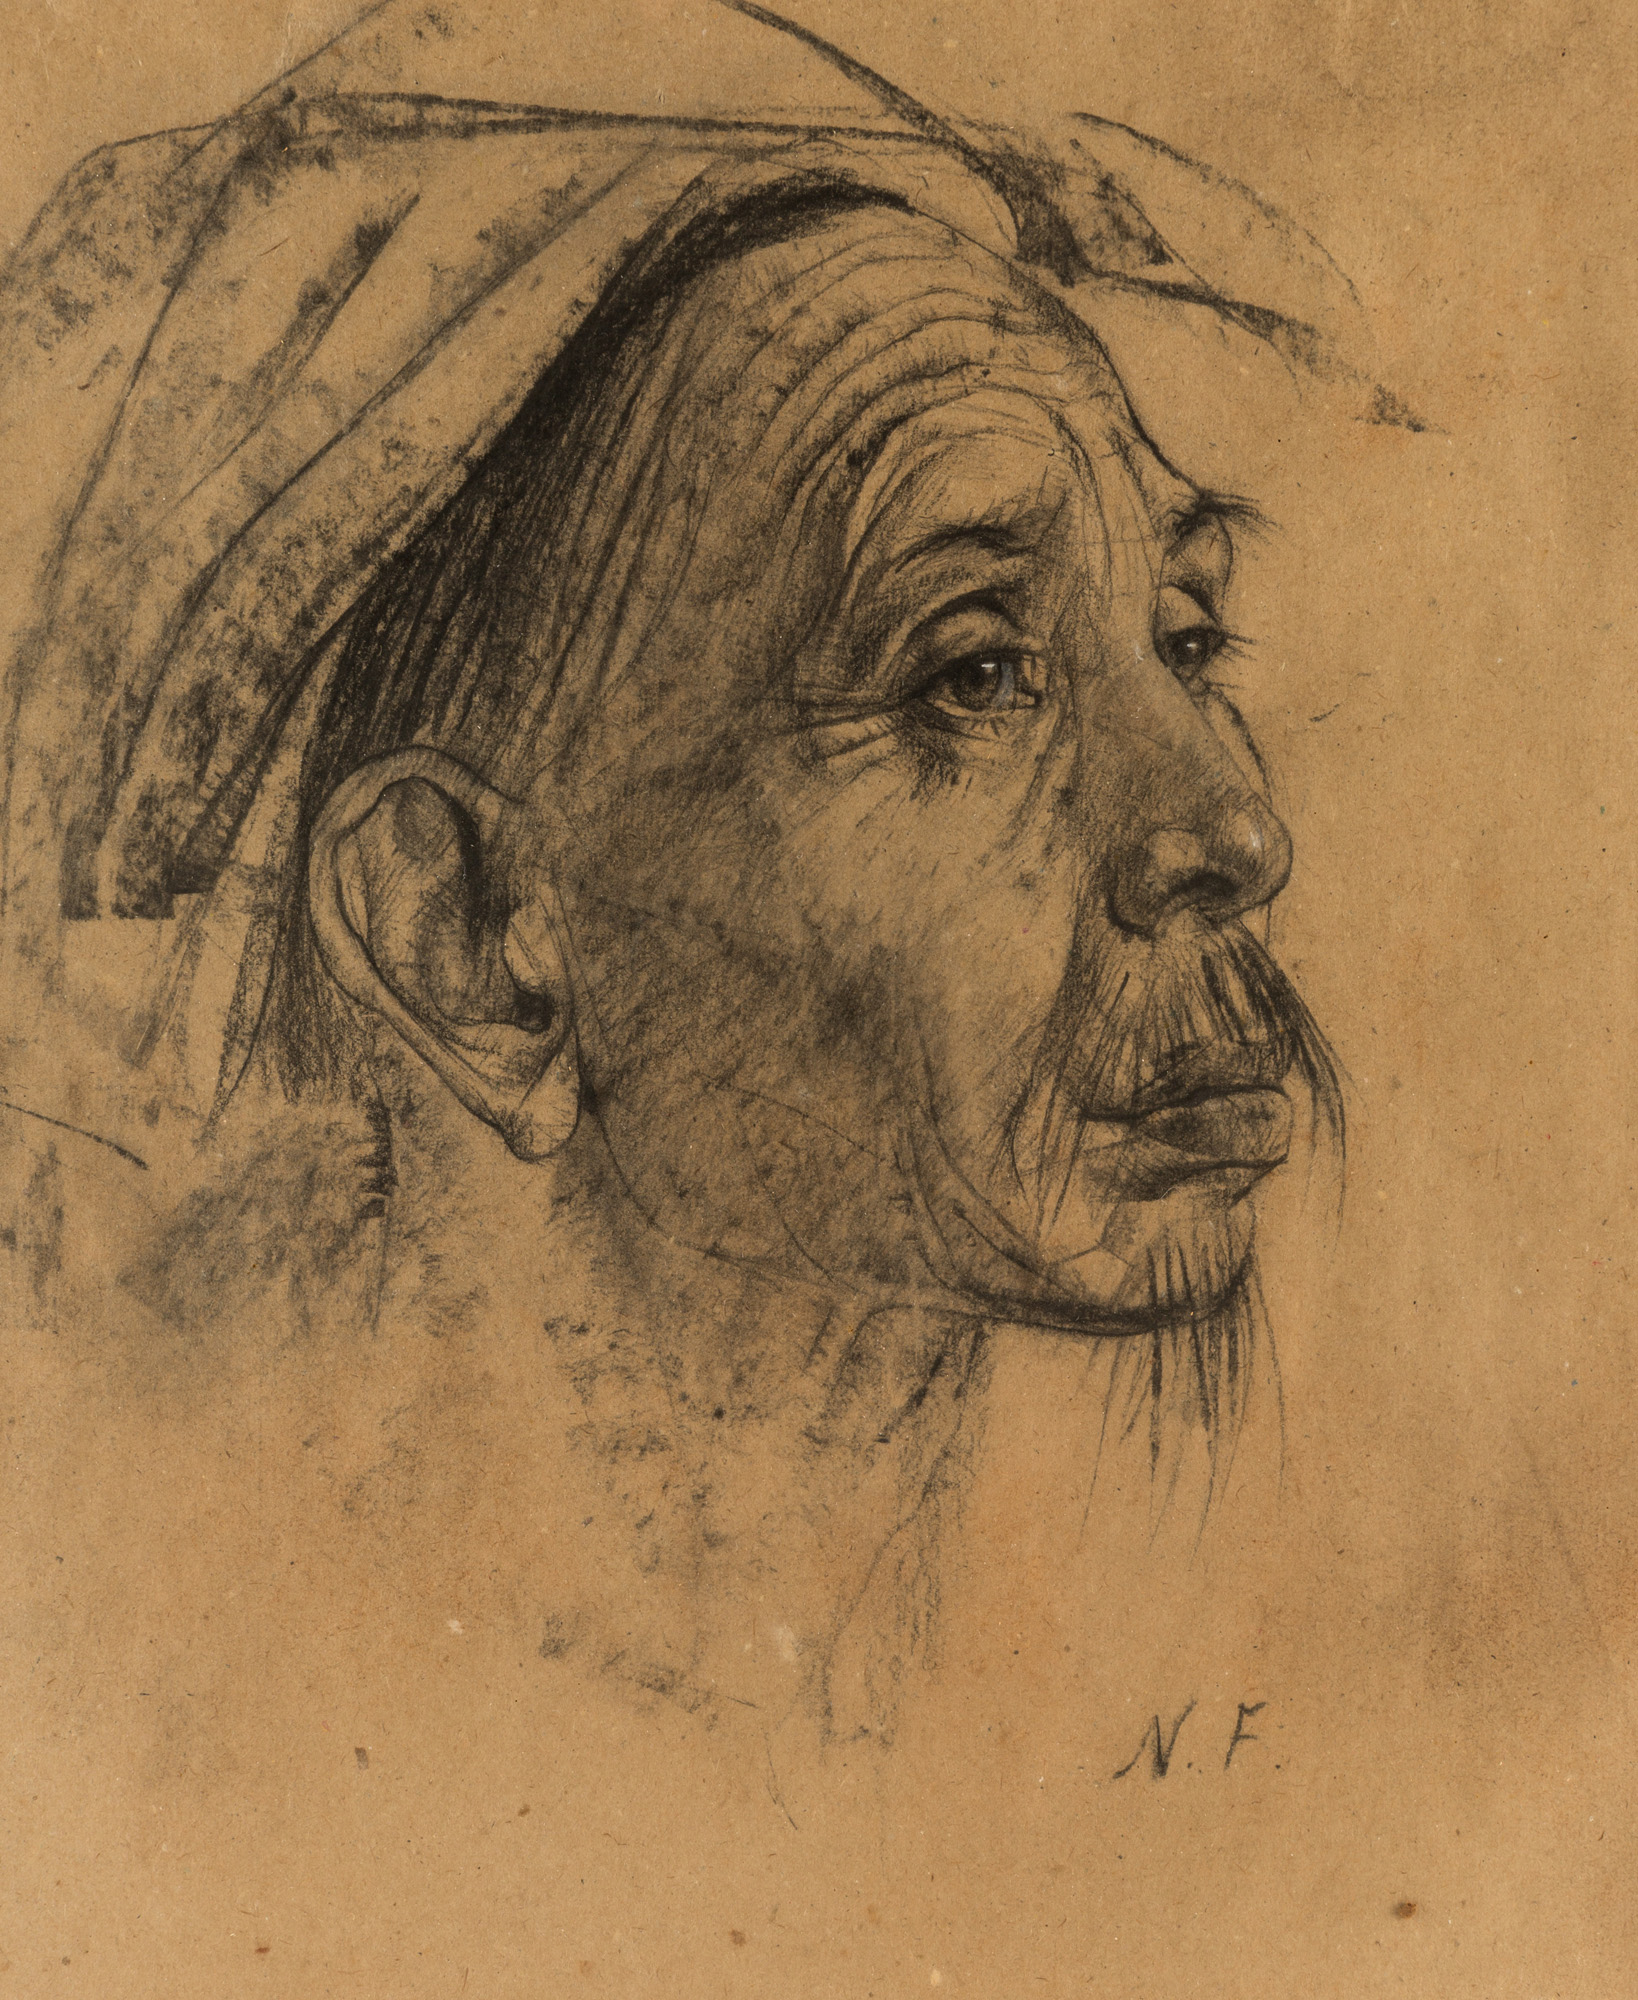 Nicolai fechin russian 1881 1955 portrait of a balinese for Nicolai fechin paintings for sale